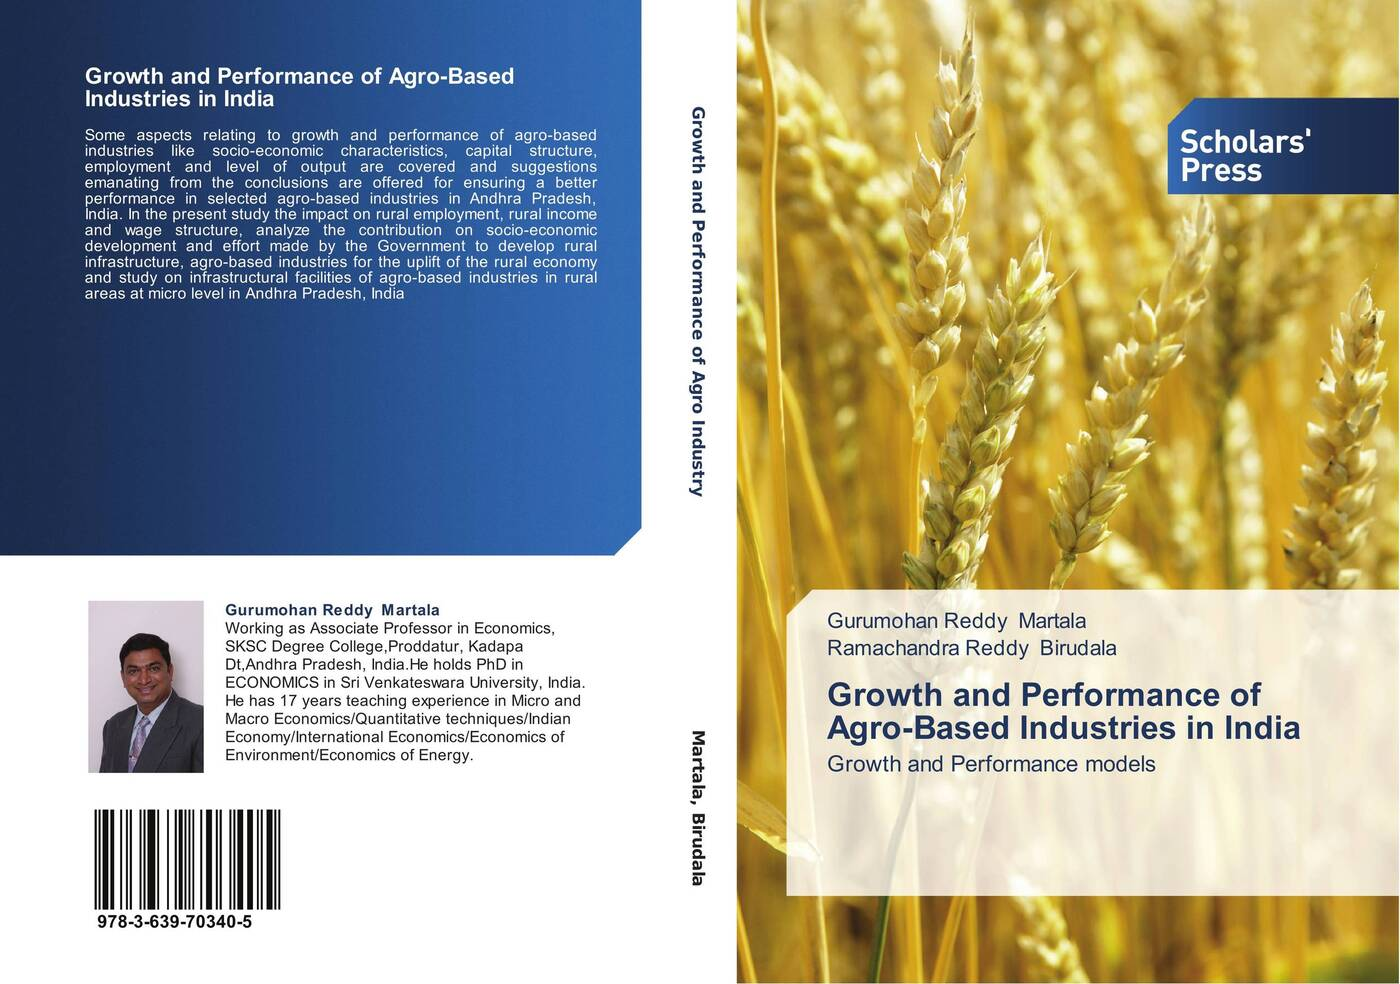 где купить Gurumohan Reddy Martala and Ramachandra Reddy Birudala Growth and Performance of Agro-Based Industries in India недорого с доставкой